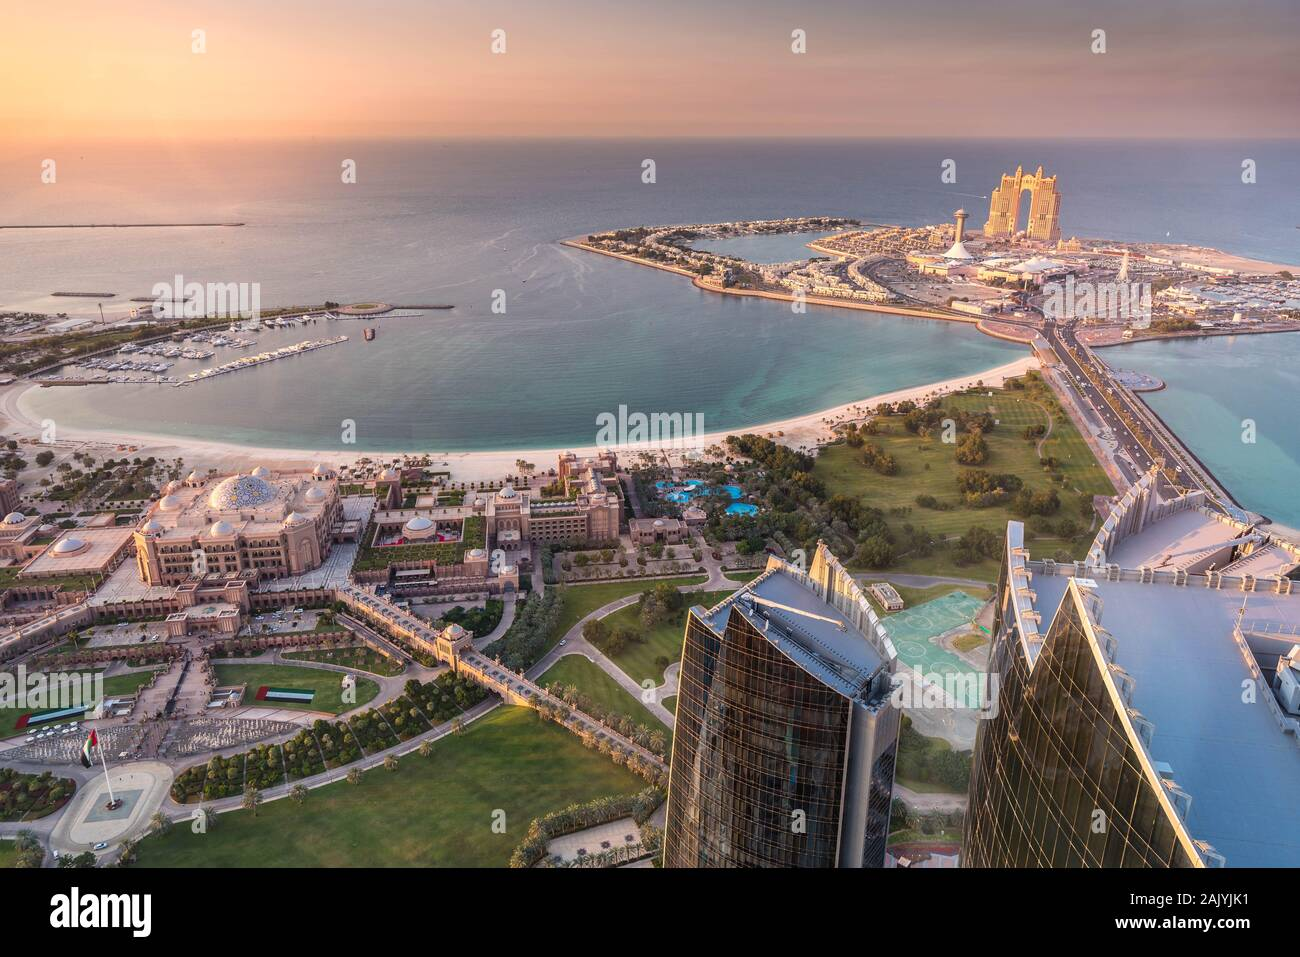 Abu Dhabi United Arab Emirates Beautiful Aerial View From Observation Deck At 300 Etihad Towers Emirates Palace And Al Marina Village Stock Photo Alamy